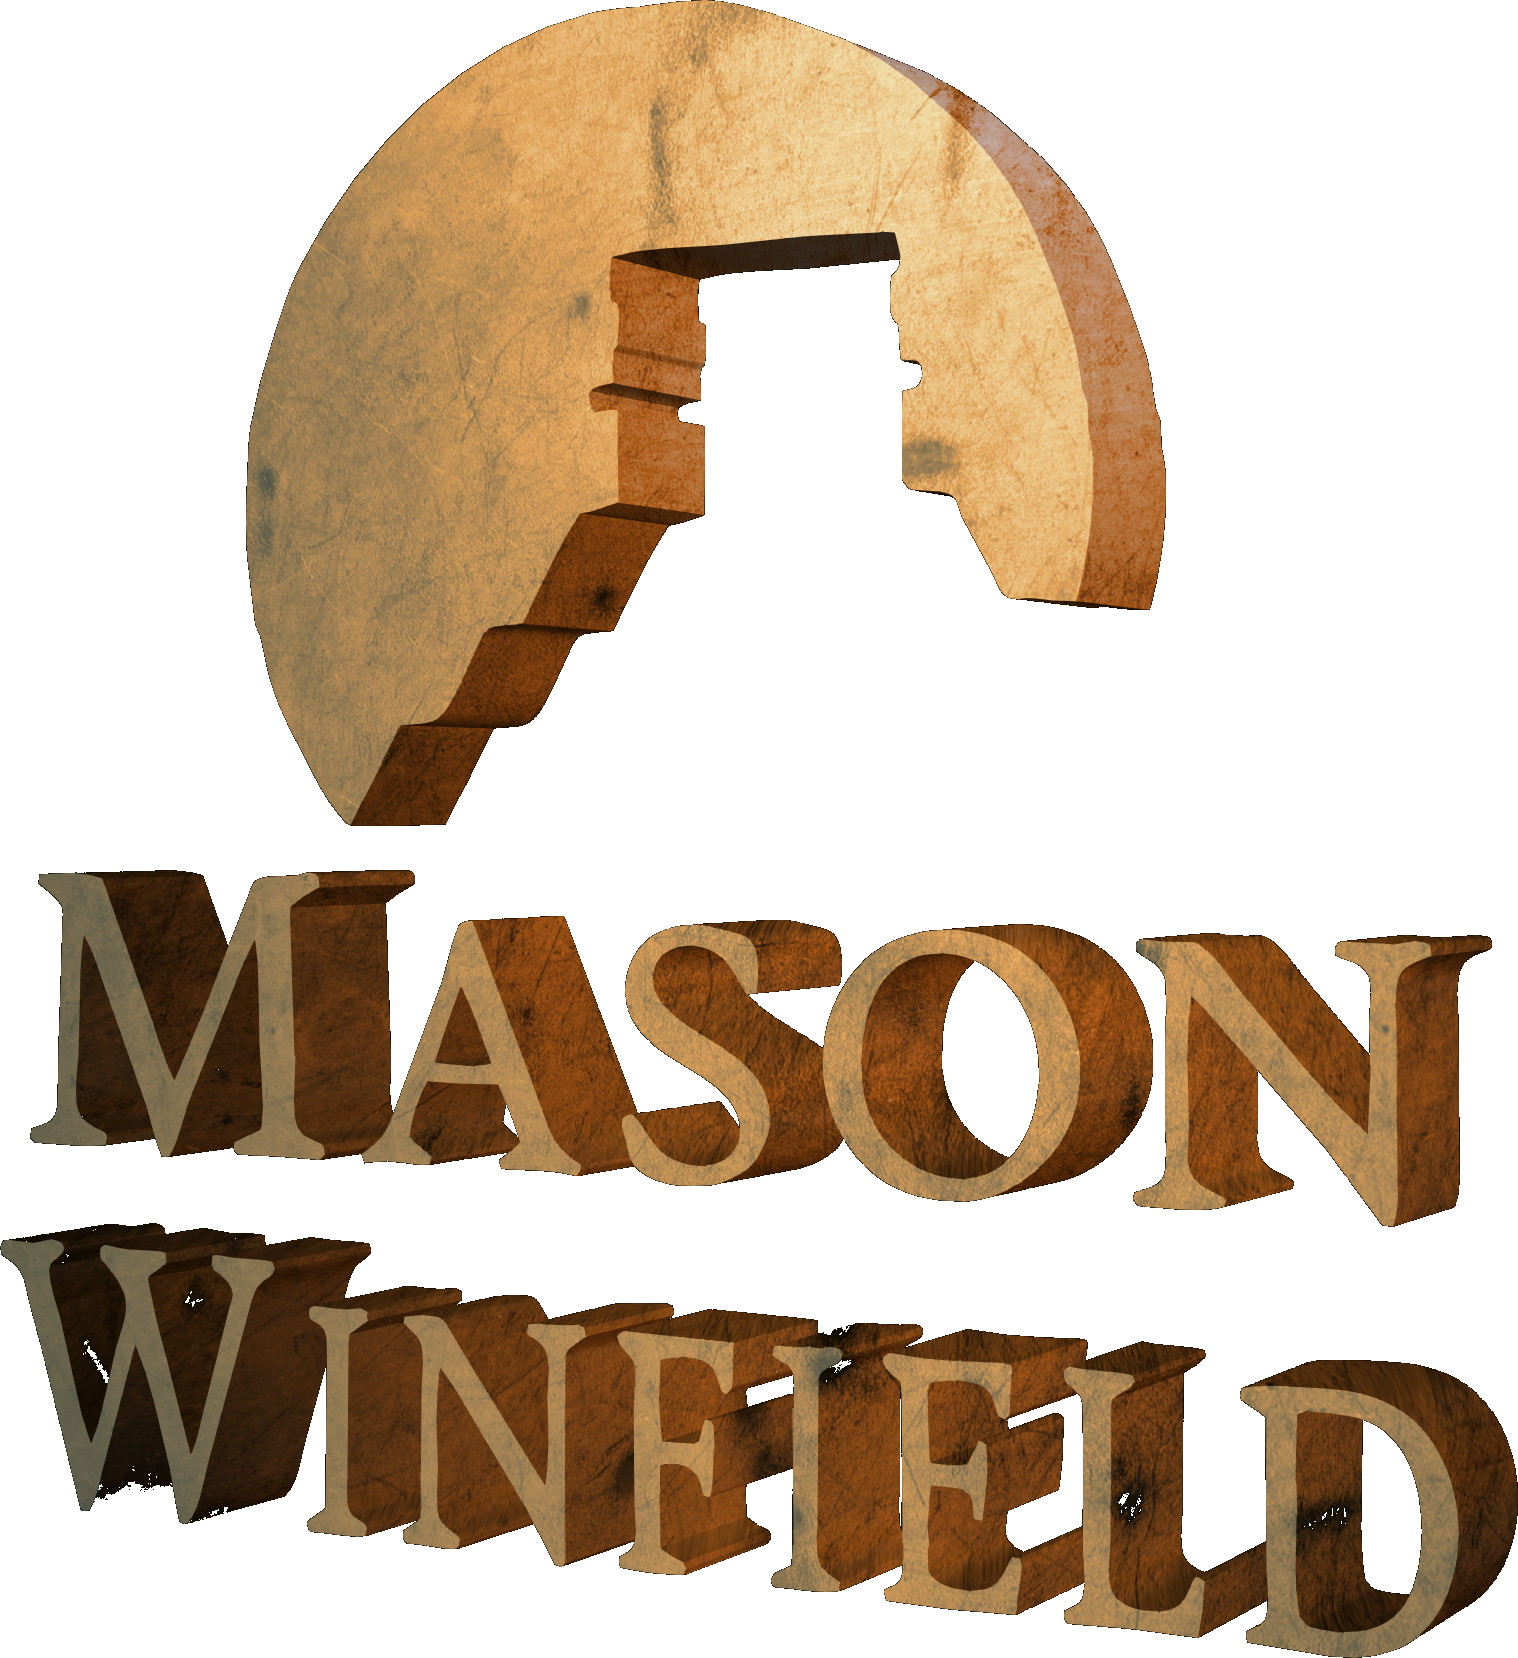 Mason Winfield | Author